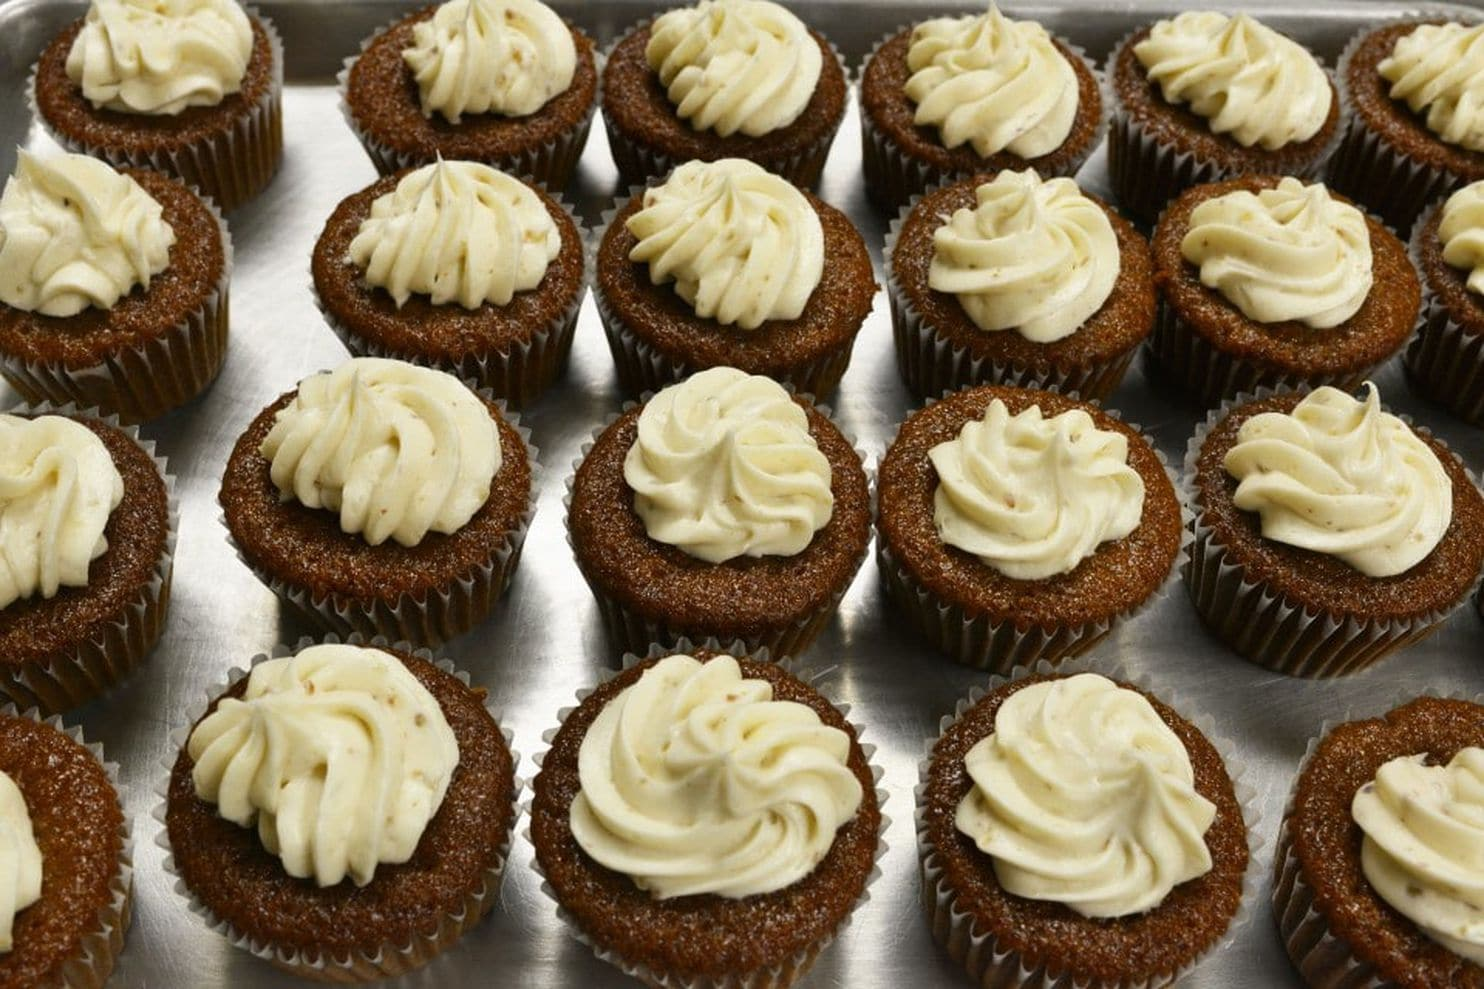 Google Maps Pulls Cupcake Calorie-counting Feature After